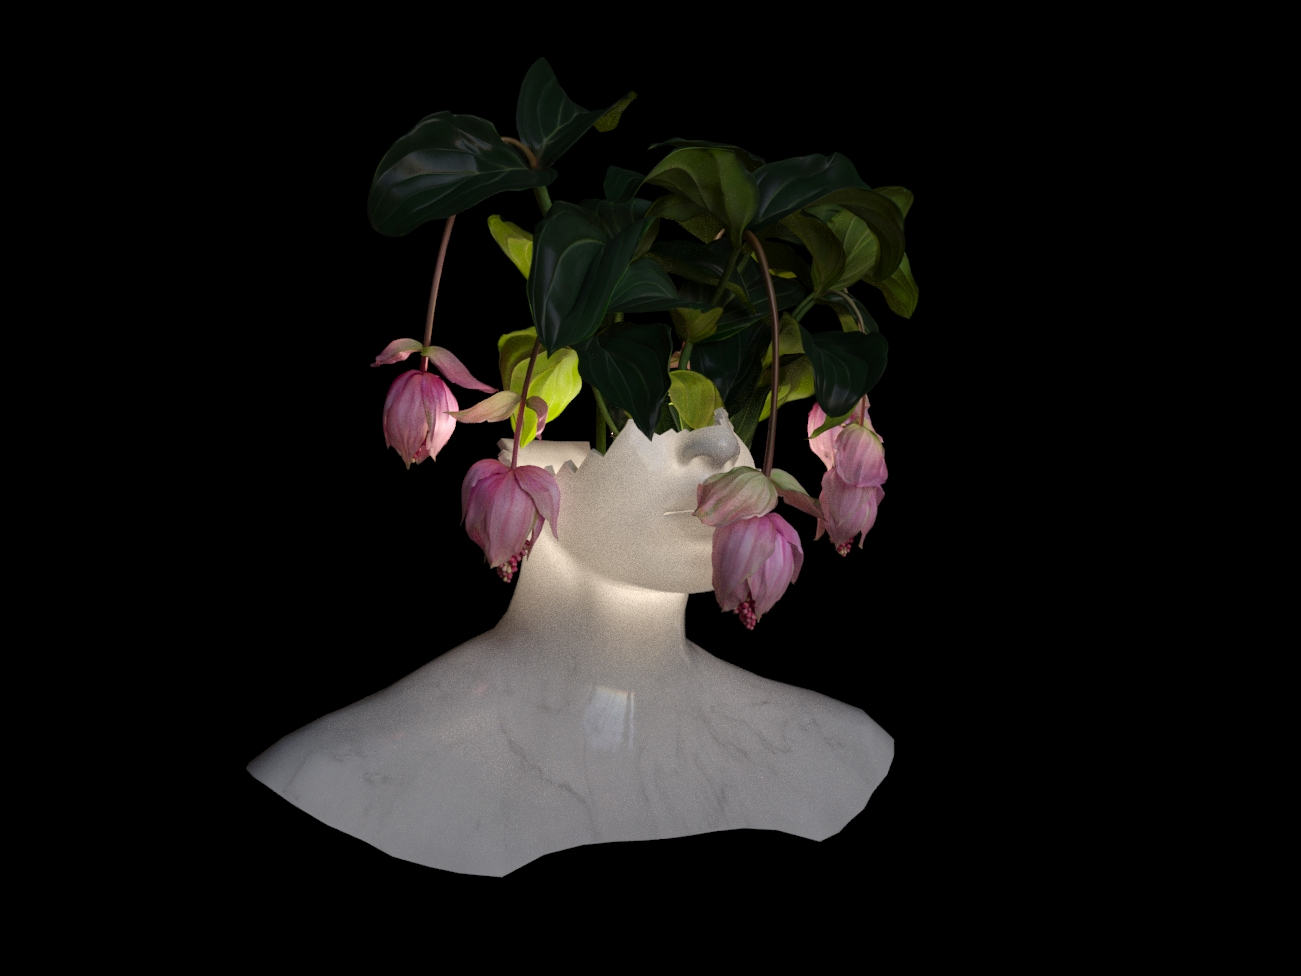 5 - Render Studio, Illuminated Bust with Foliage, (2019) CGI